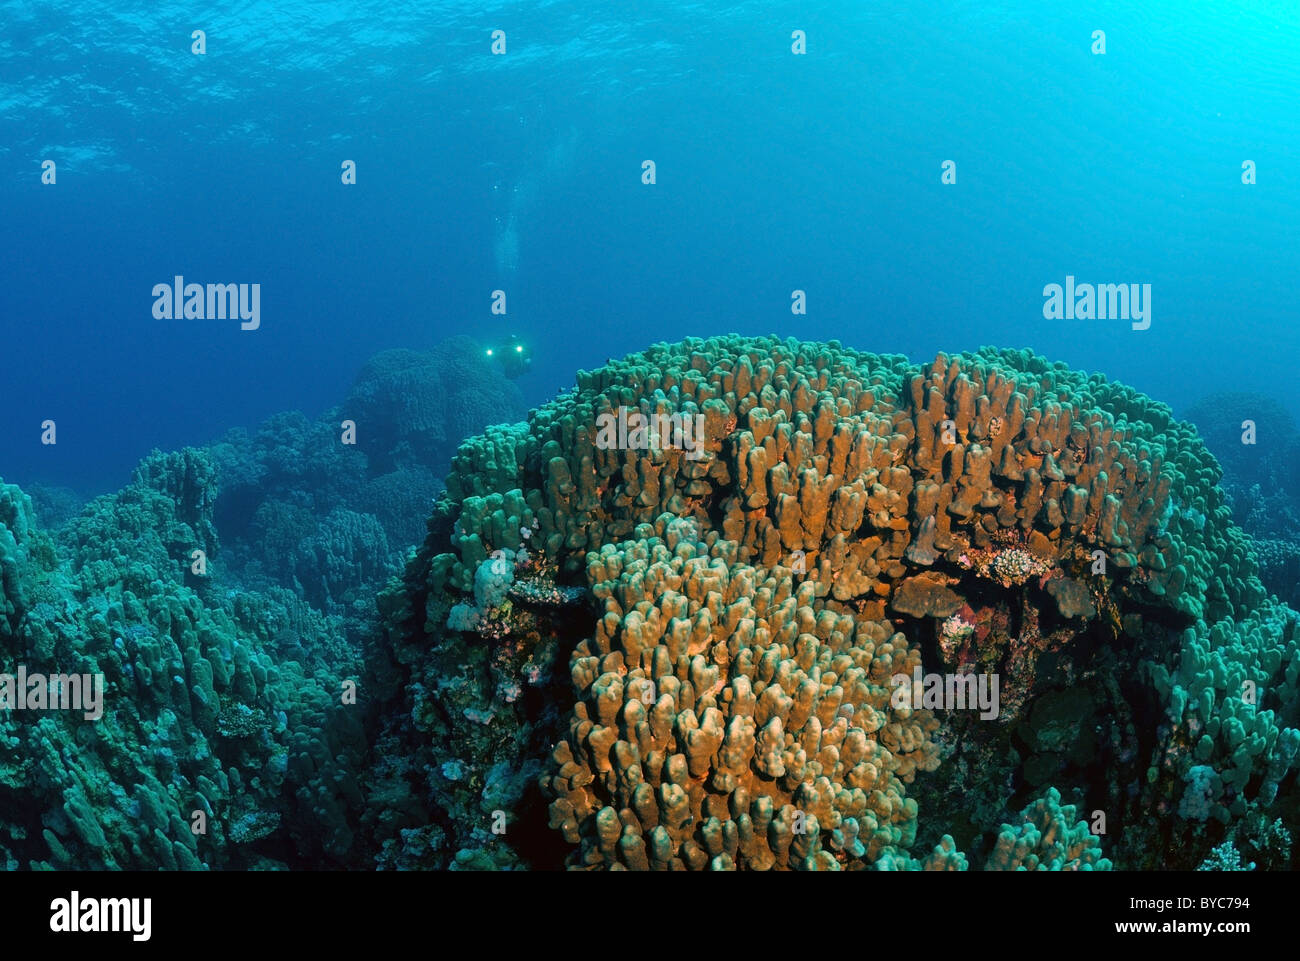 The coral reef - Stock Image